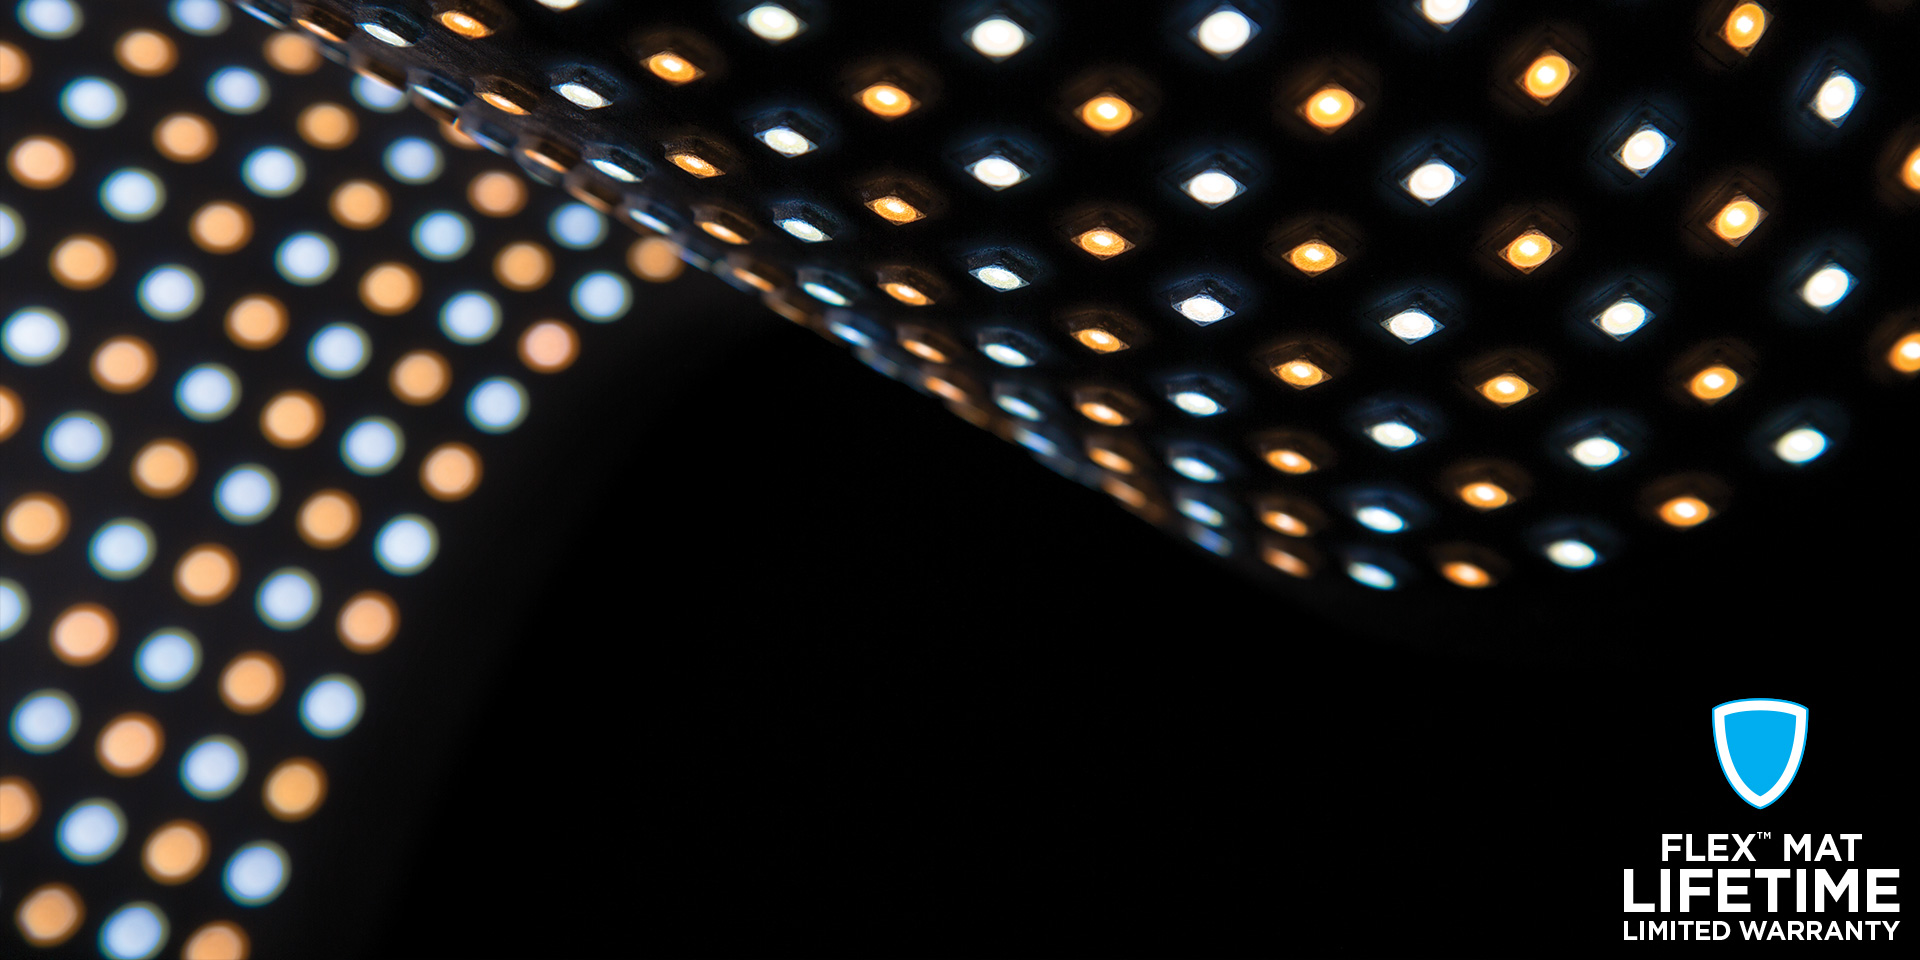 Flexible LED Mats for Photography and Filmmaking with Lifetime Warranty